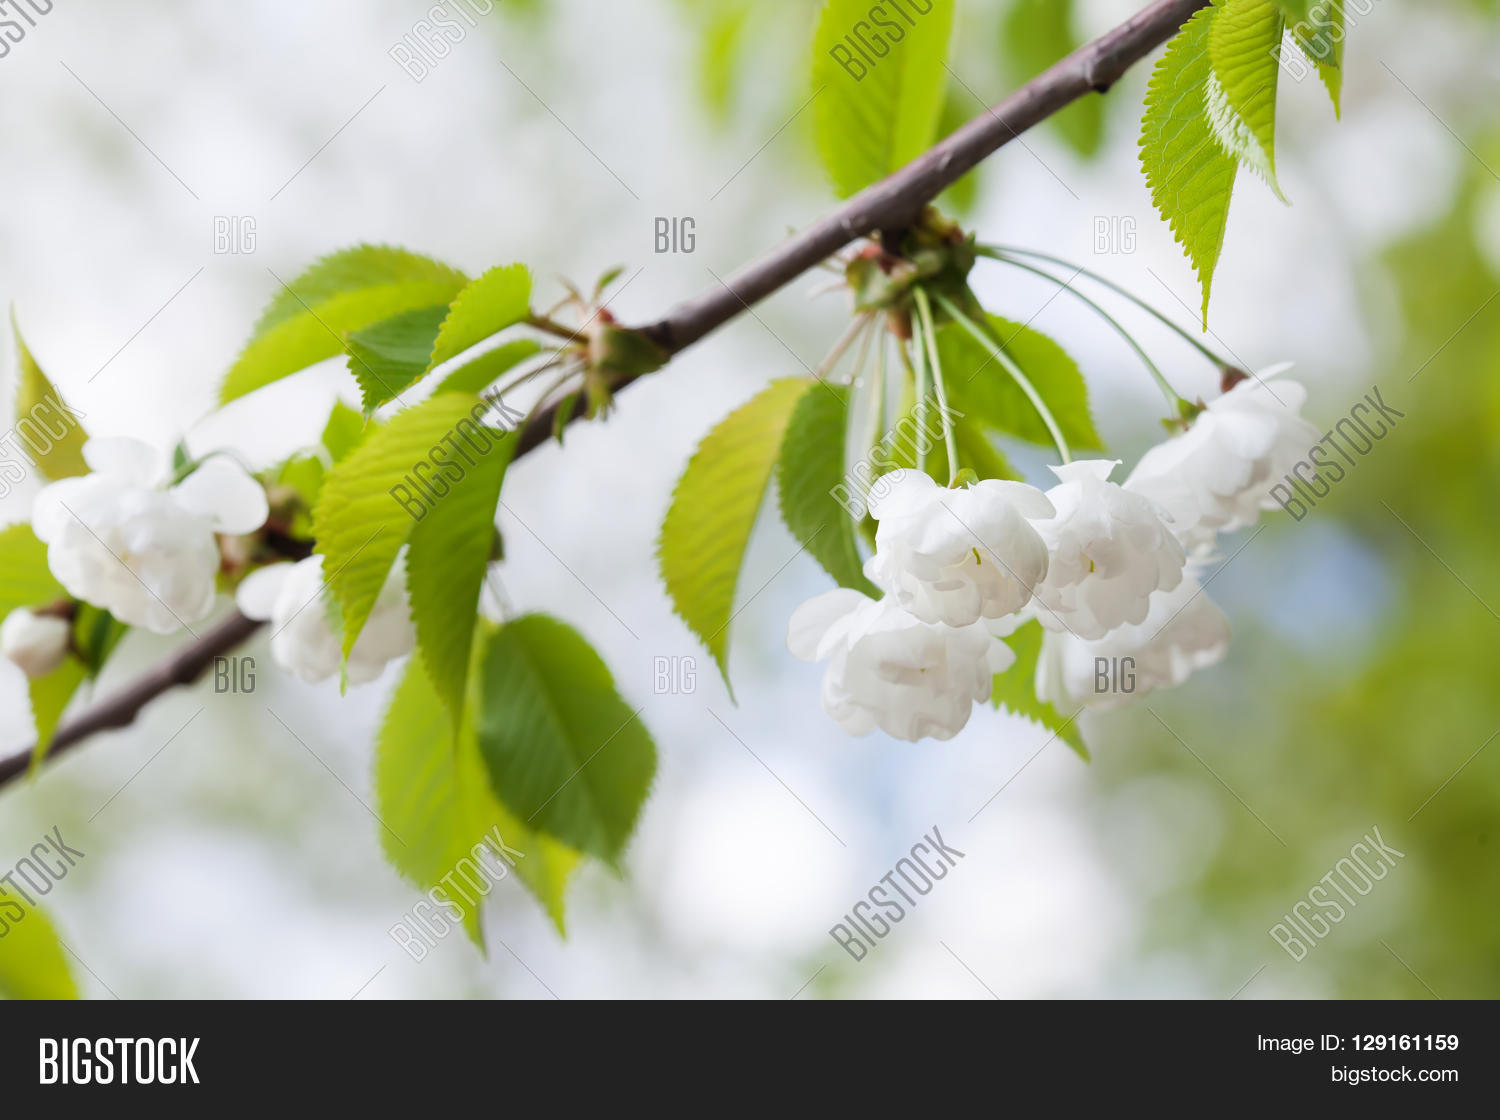 Blooming Plumleaf Crab Image Photo Free Trial Bigstock